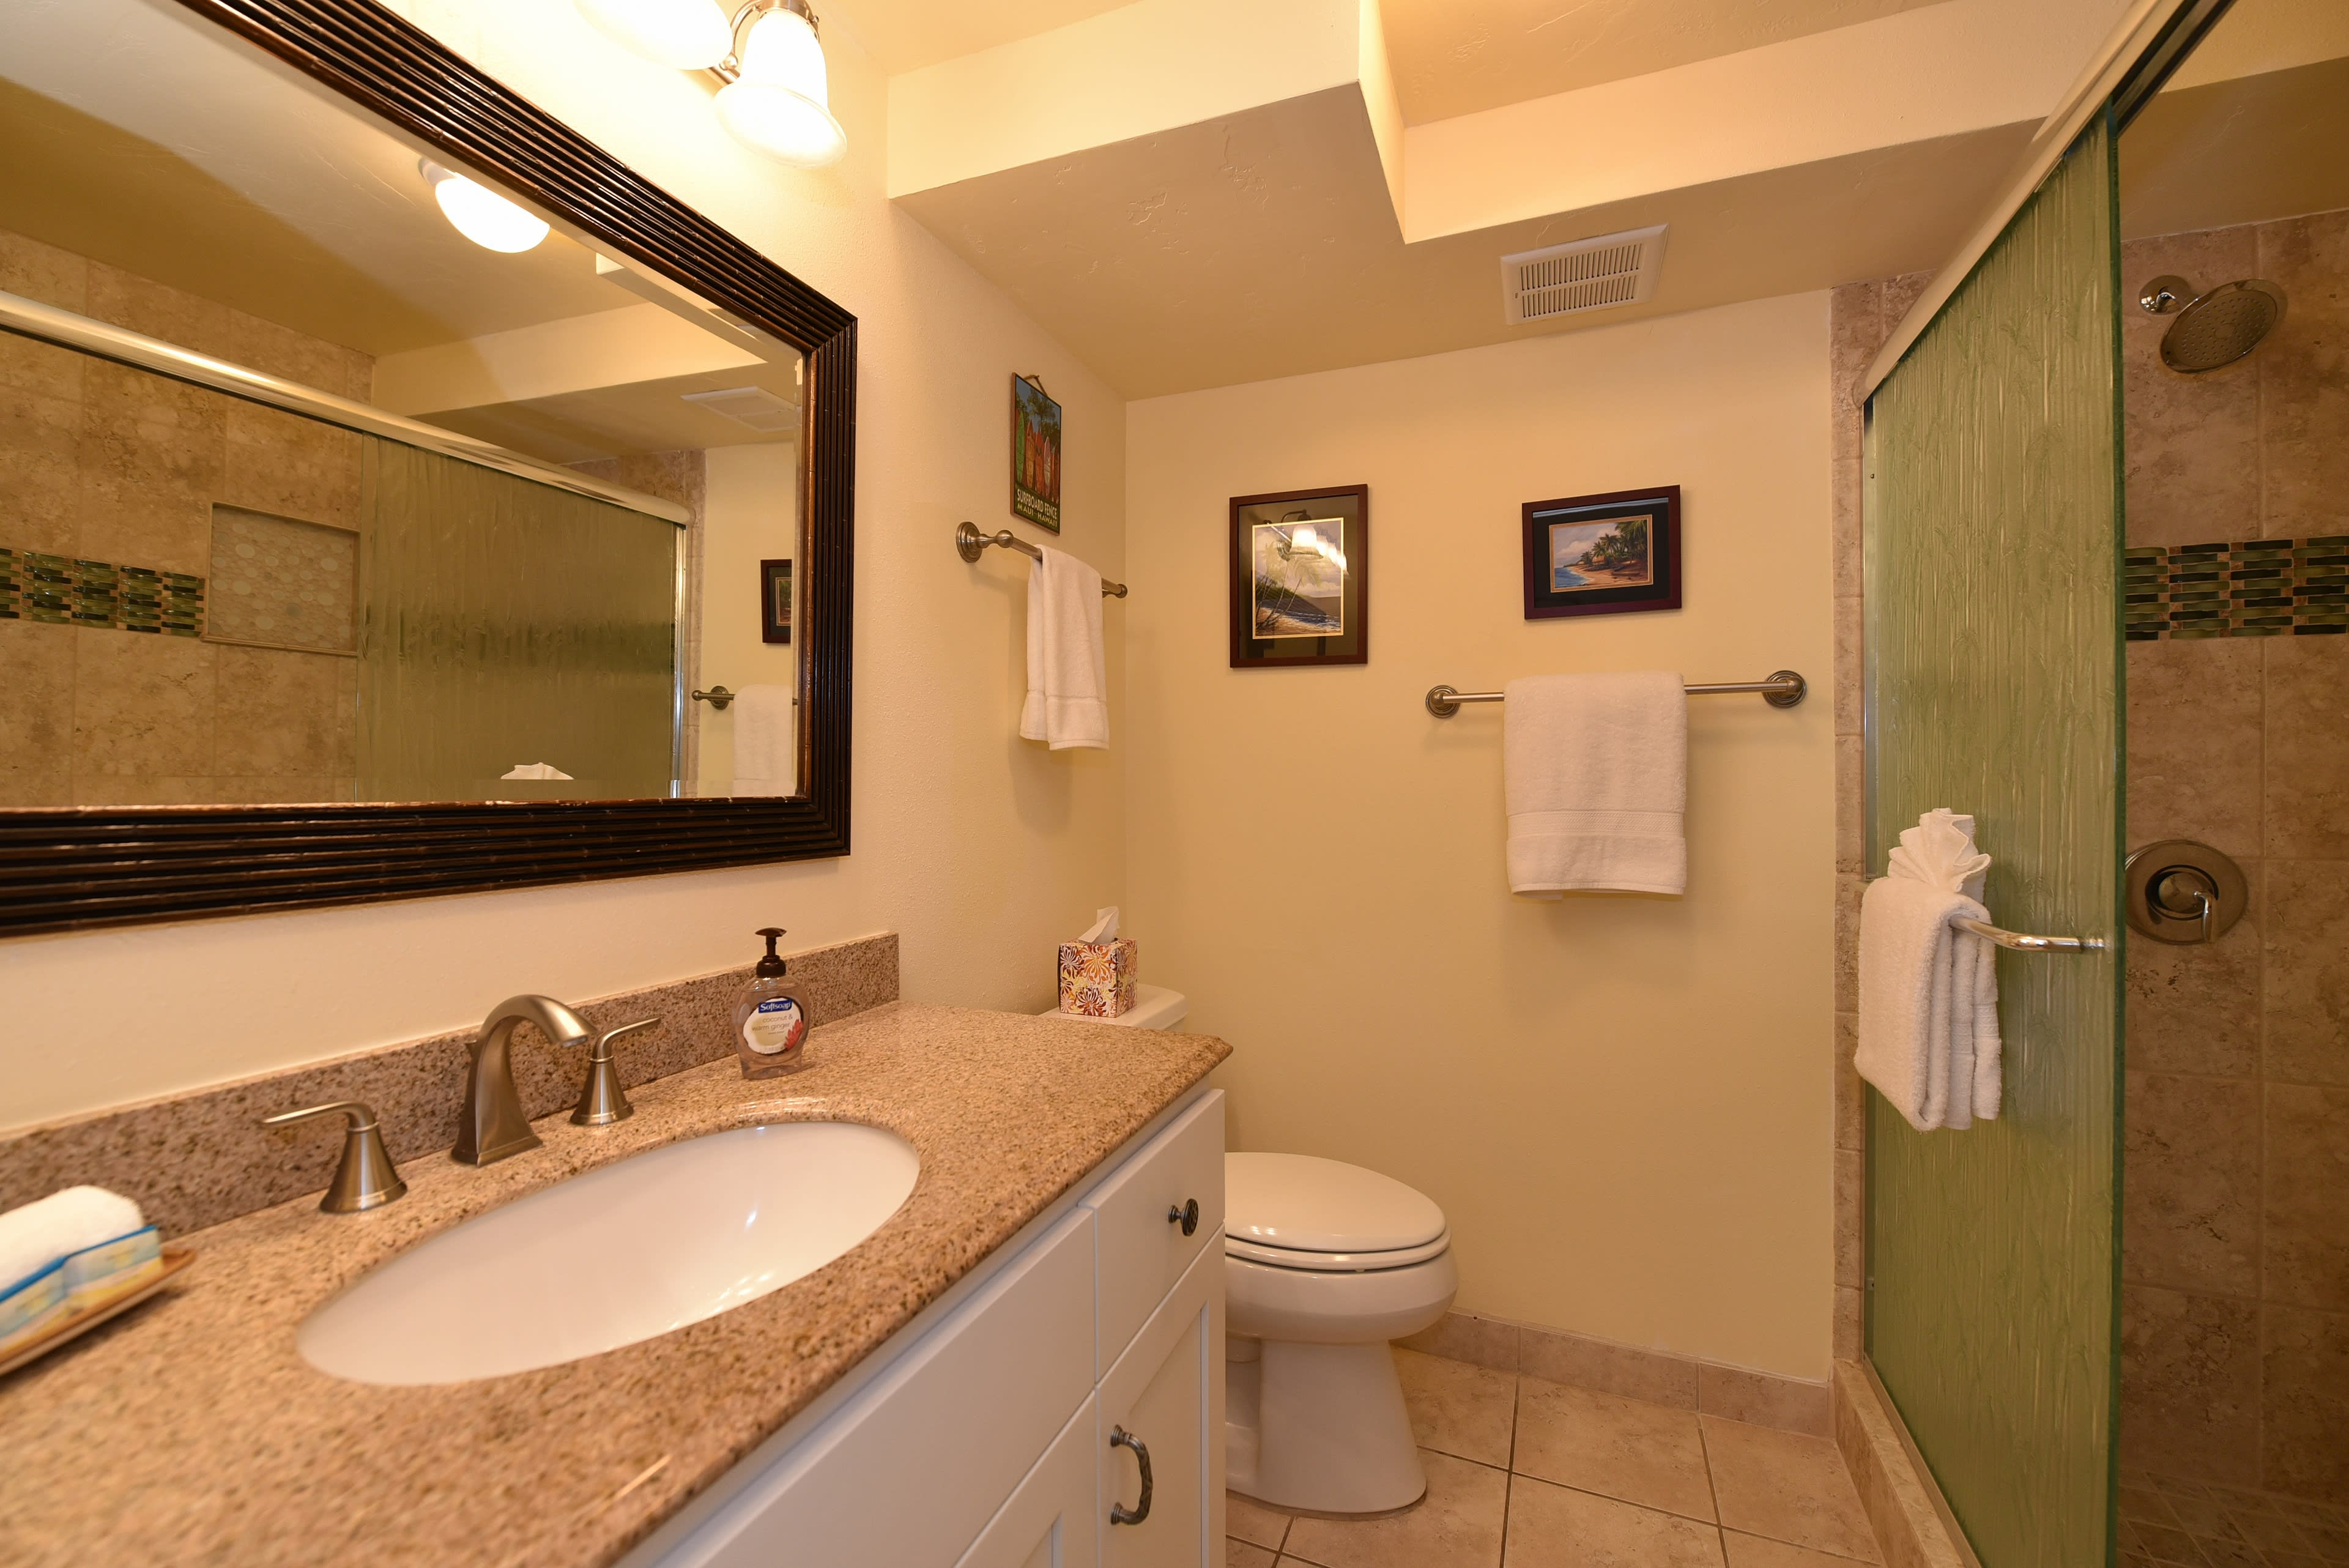 Full Bathroom   Complimentary Toiletries   Towels Provided   Walk-In Shower